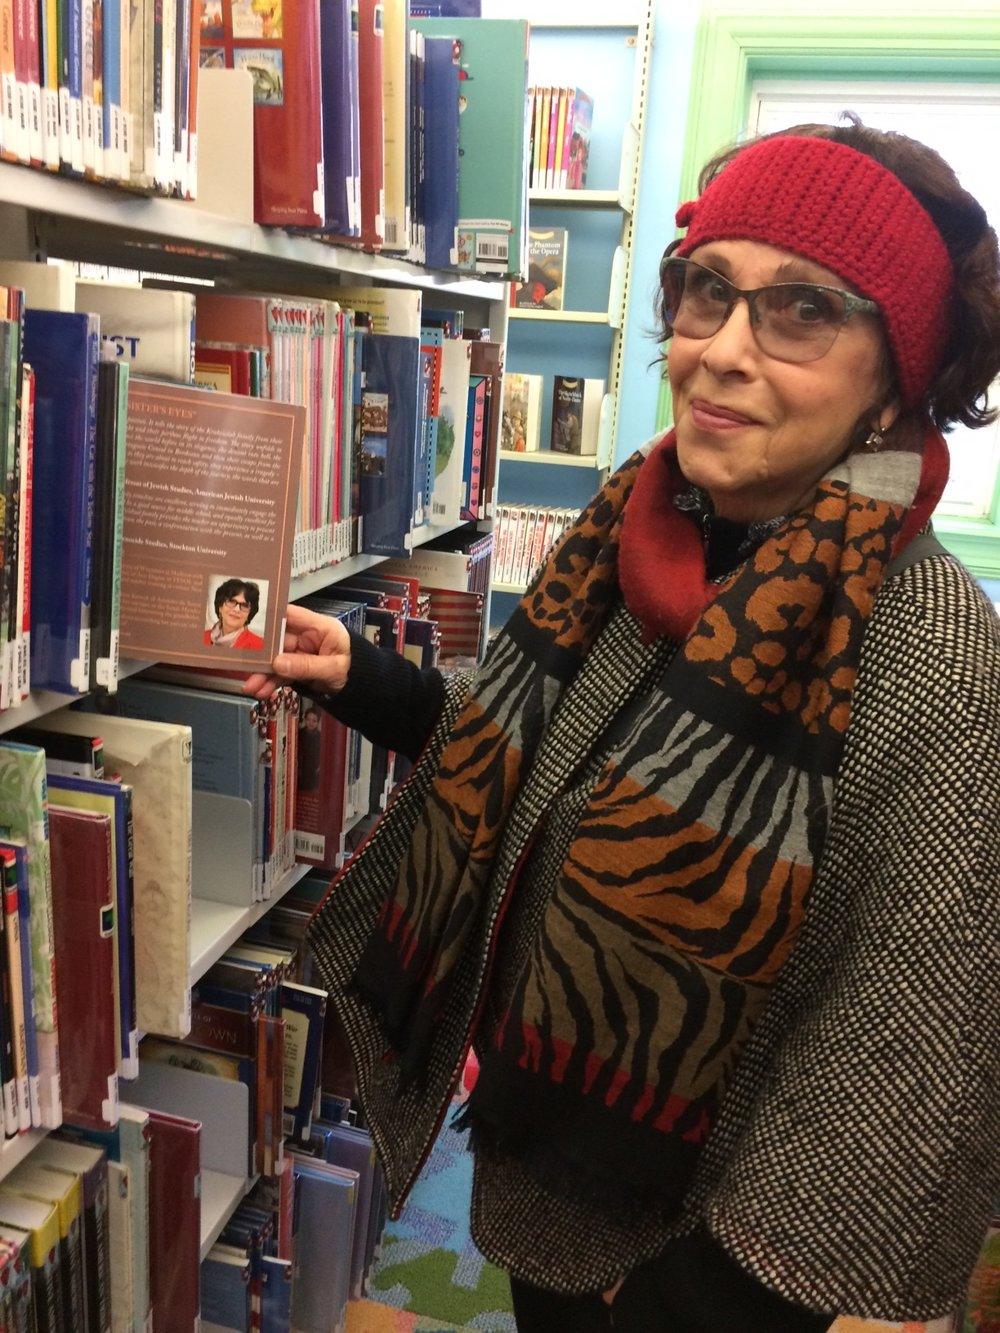 My Sister's Eyes - Hillsdale Library - Holocaust section - Author in the stacks2.JPG